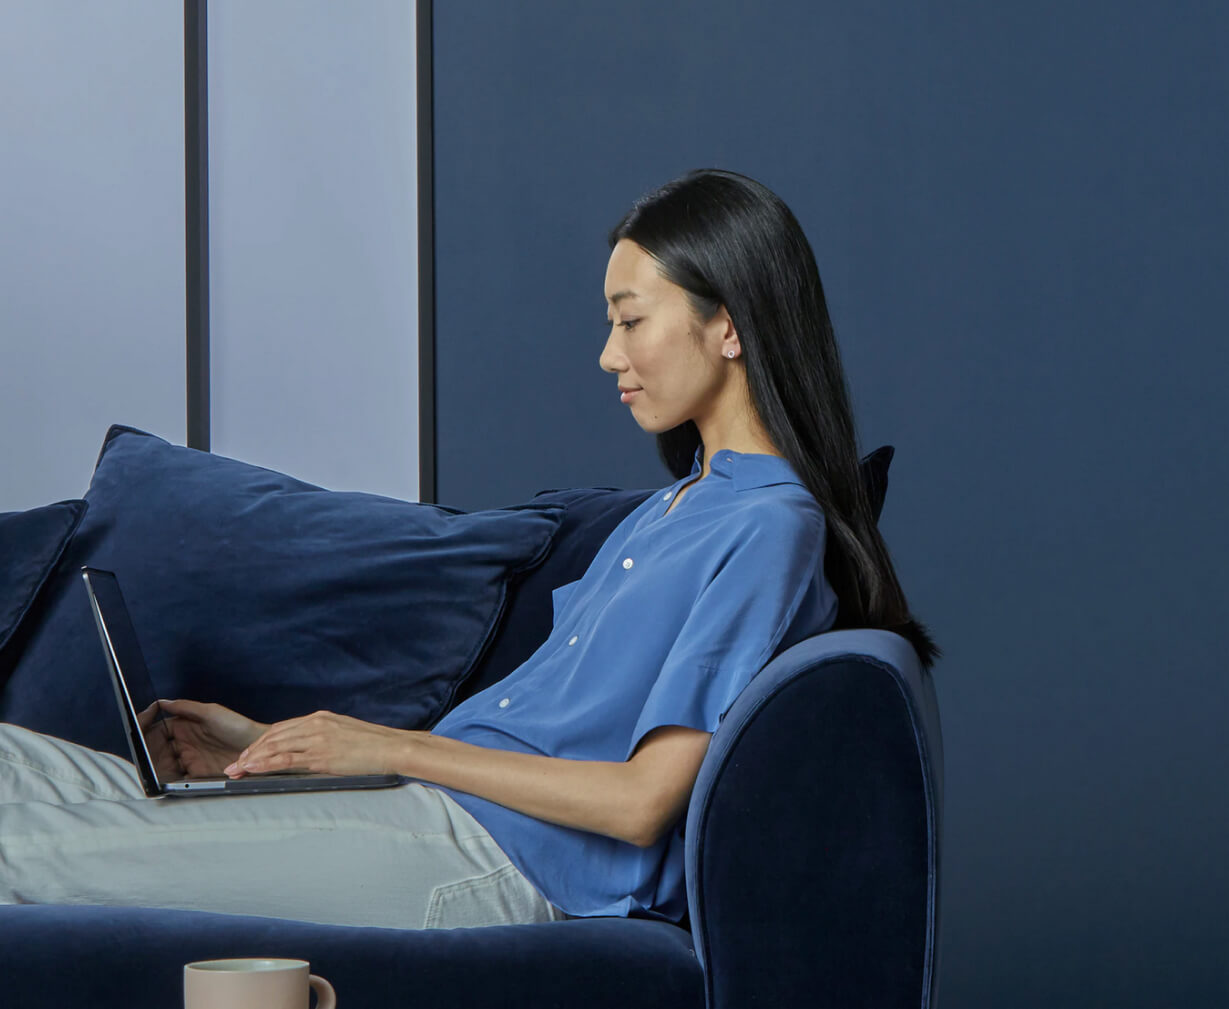 Profile of a woman wearing a blue shirt, working on her laptop.